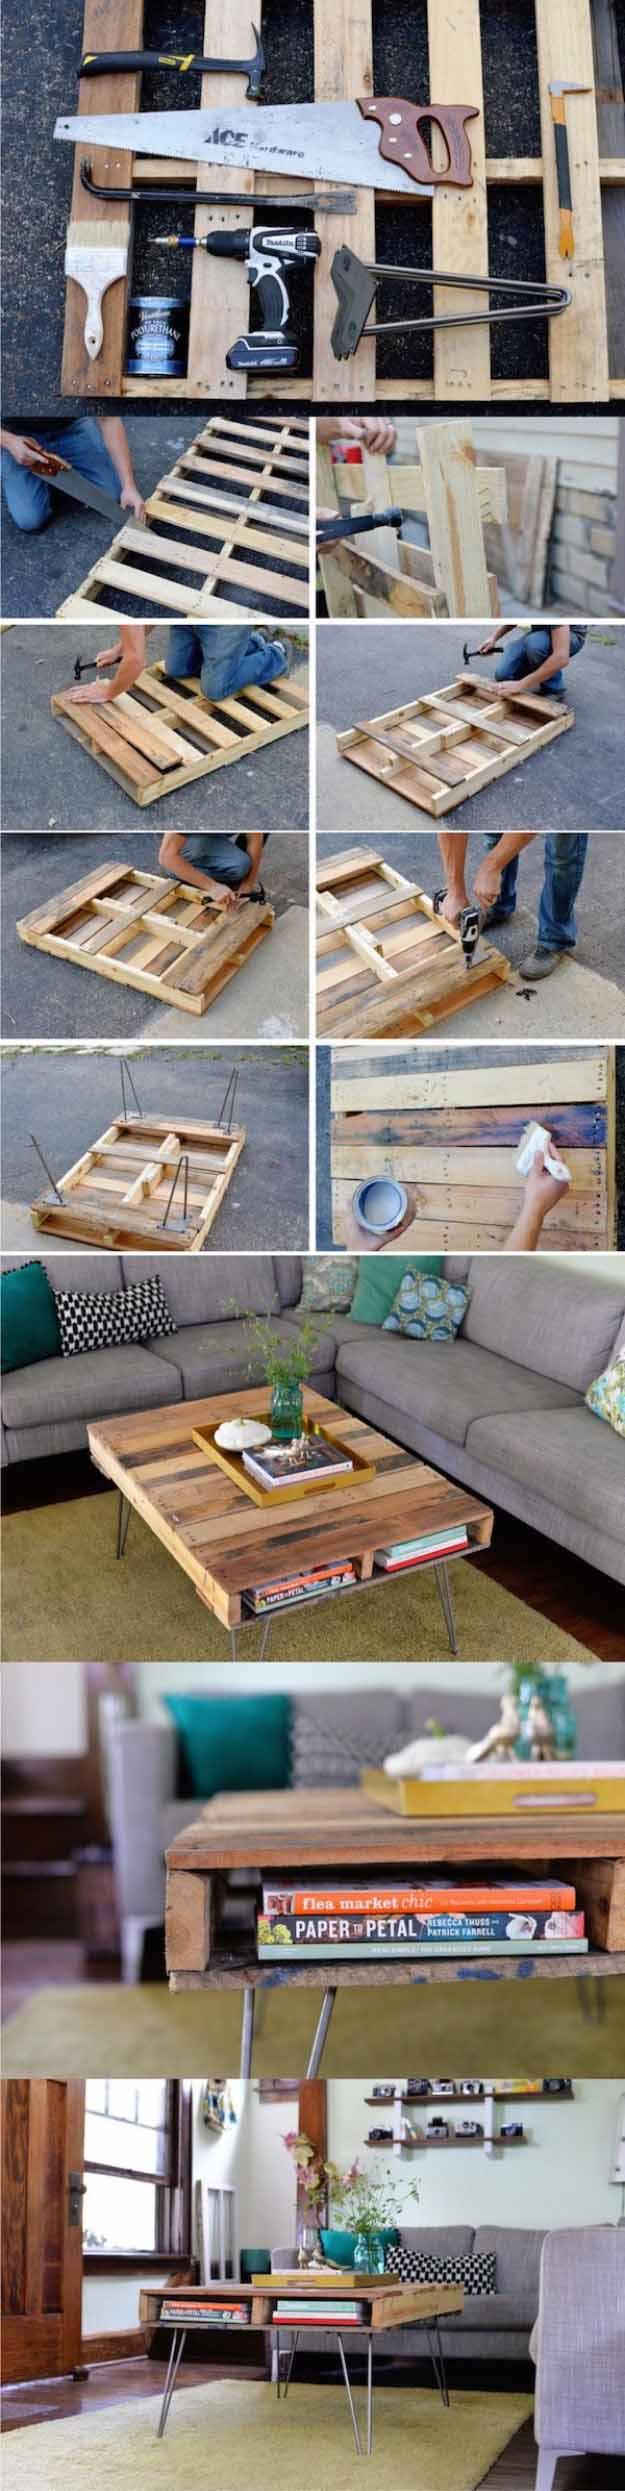 diy pallet furniture tutorial cheap coffee table ideas diy